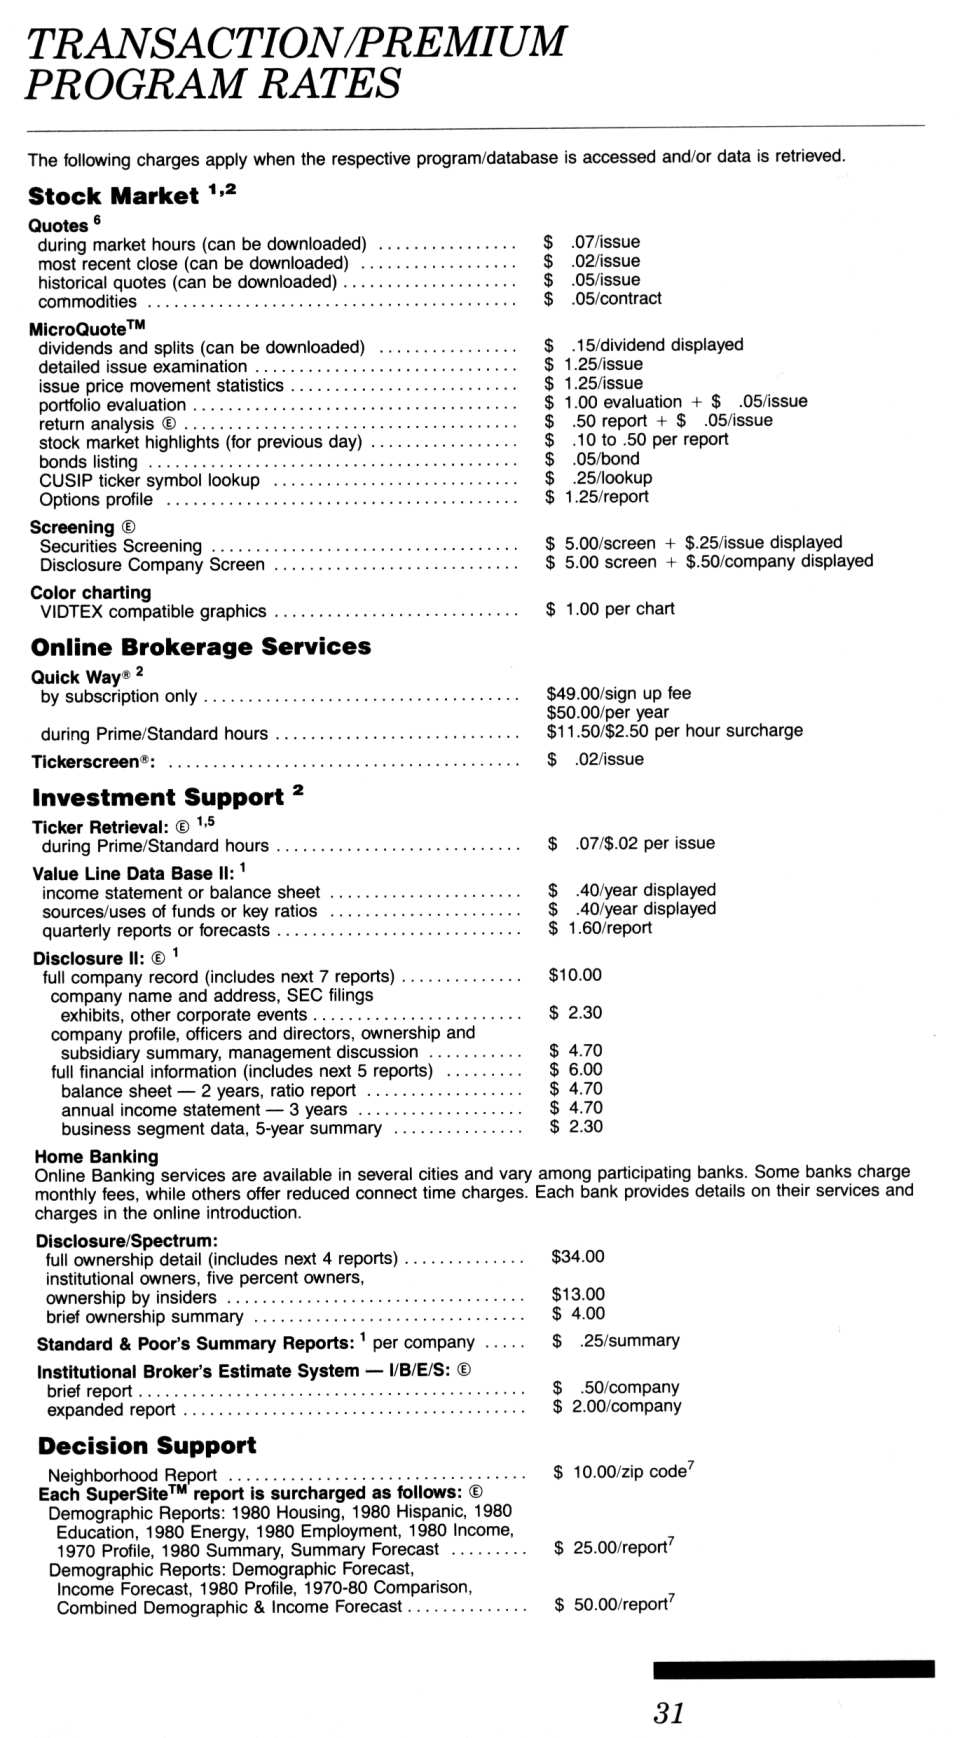 [CompuServe IntroPak page 31/44  Transaction/Premium Program Rates (1/3)]